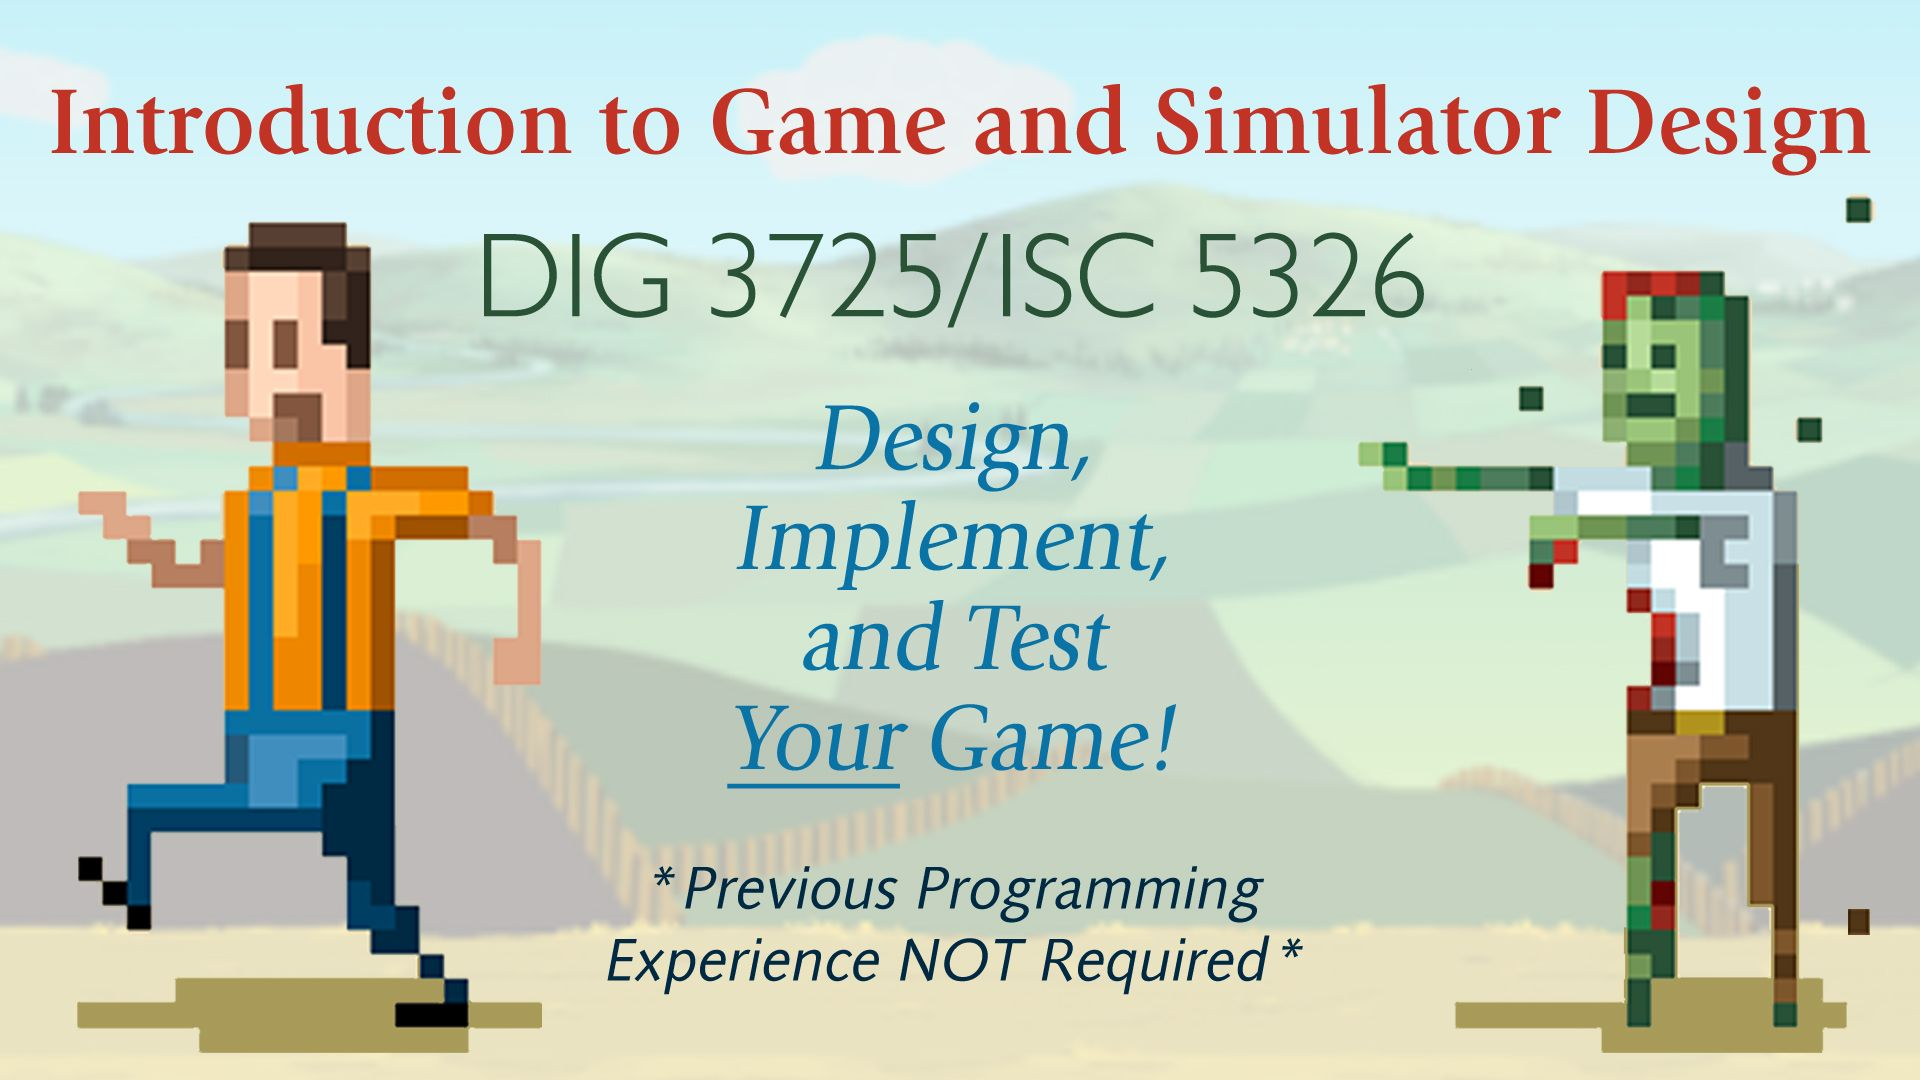 Intro to Game and Simulator Design